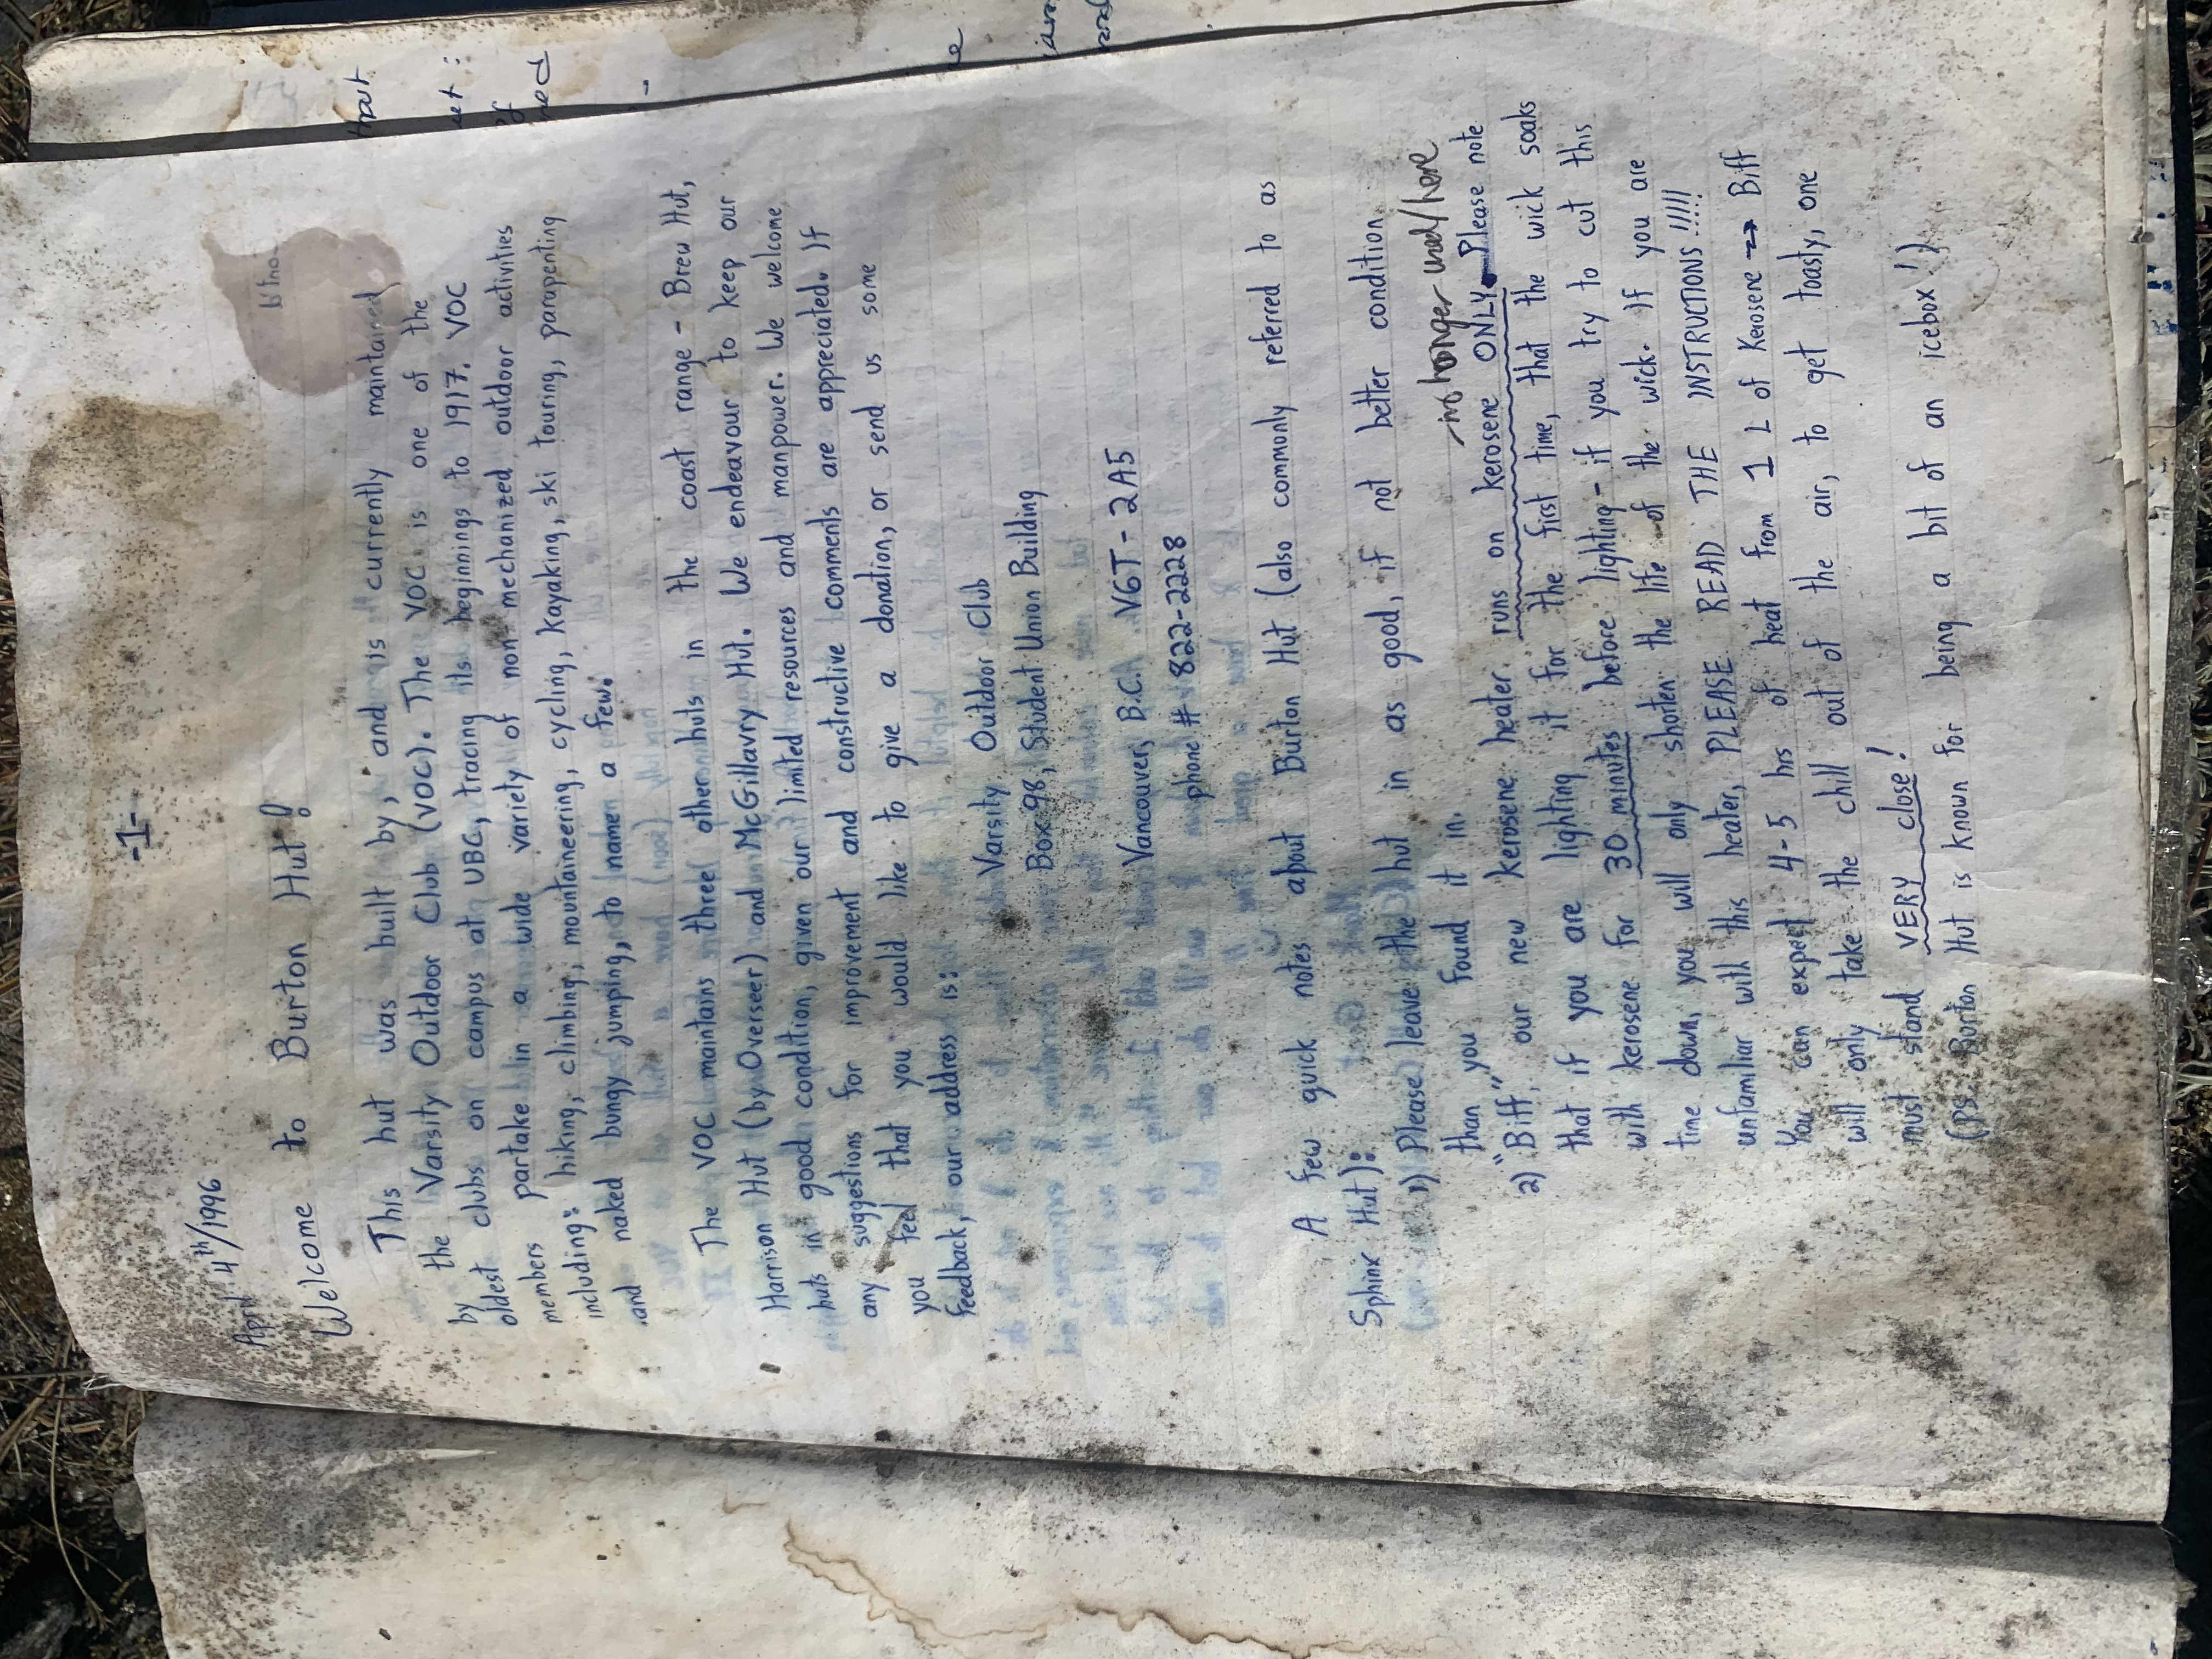 The water damaged 1996 hut journal. Photo by Haley